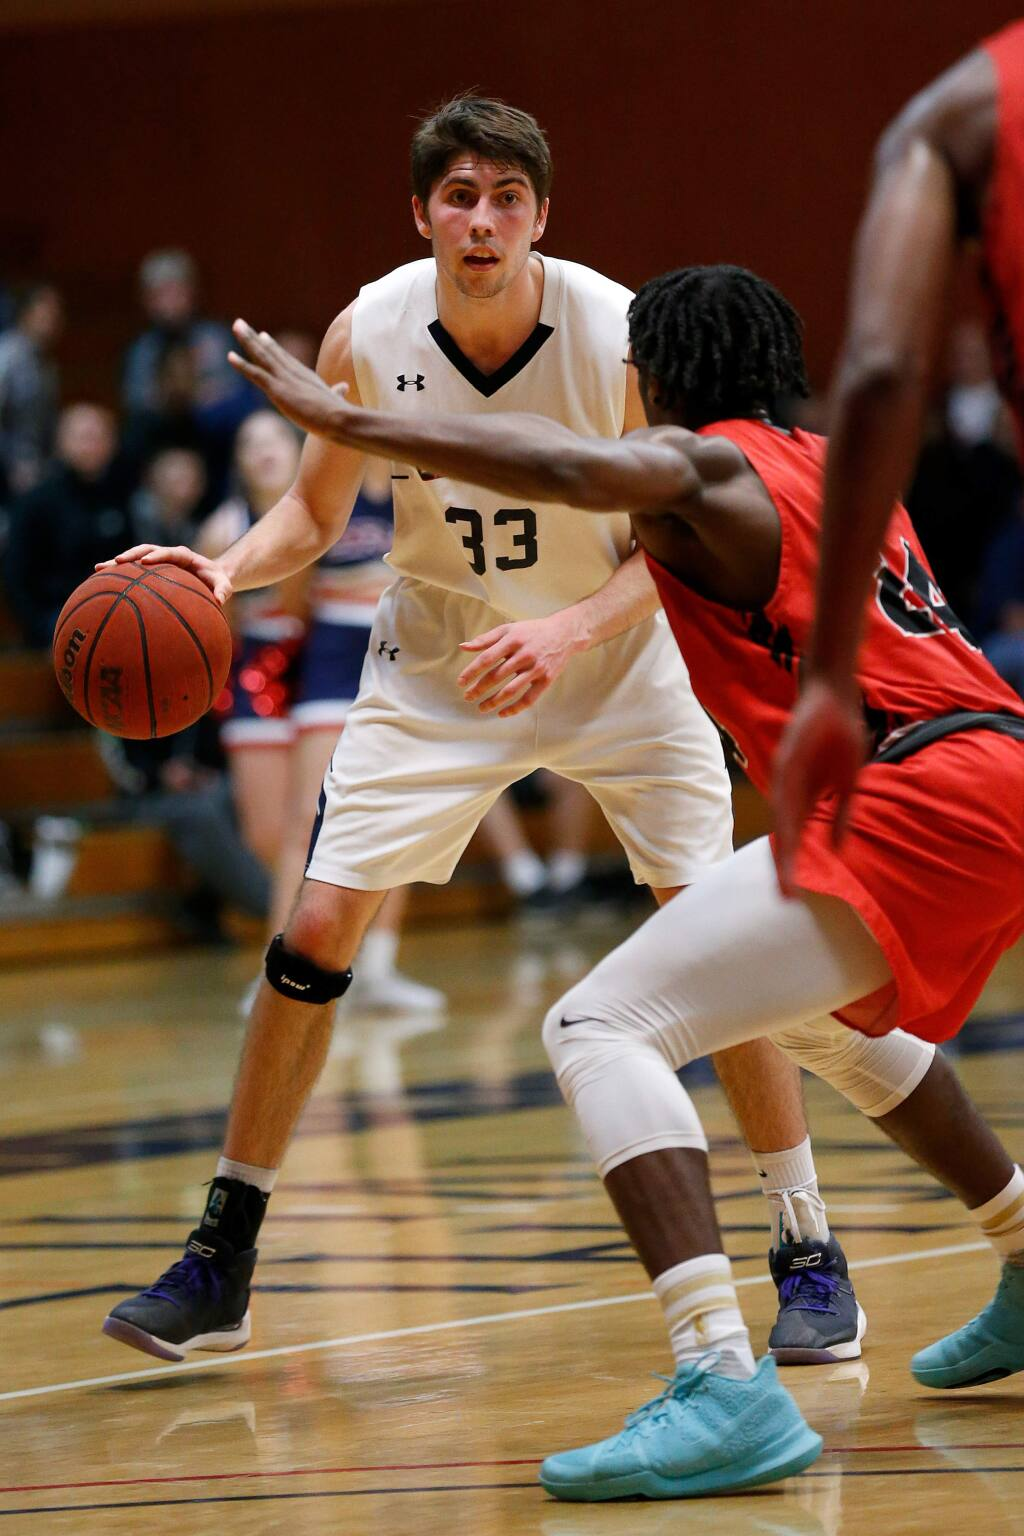 SRJC's Skylar Chavez (33) faces off against Las Positas's Nana Appiah during the second half of the CCCAA first-round playoff game at Haehl Pavilion in Santa Rosa on Friday, March 1, 2019. (Alvin Jornada / The Press Democrat)